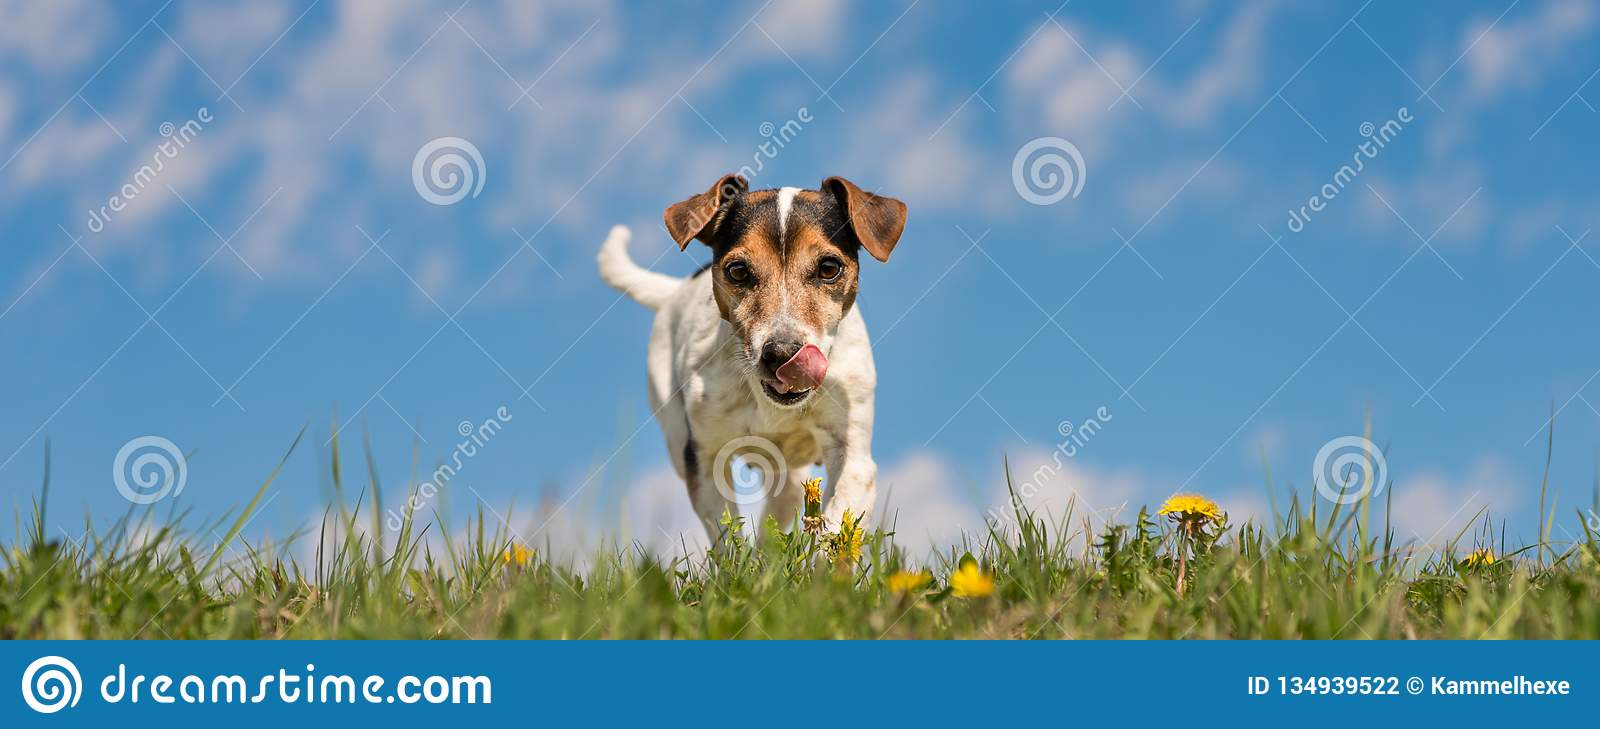 Jack Russell Terrier dog in blooming spring meadow in front of blue sky